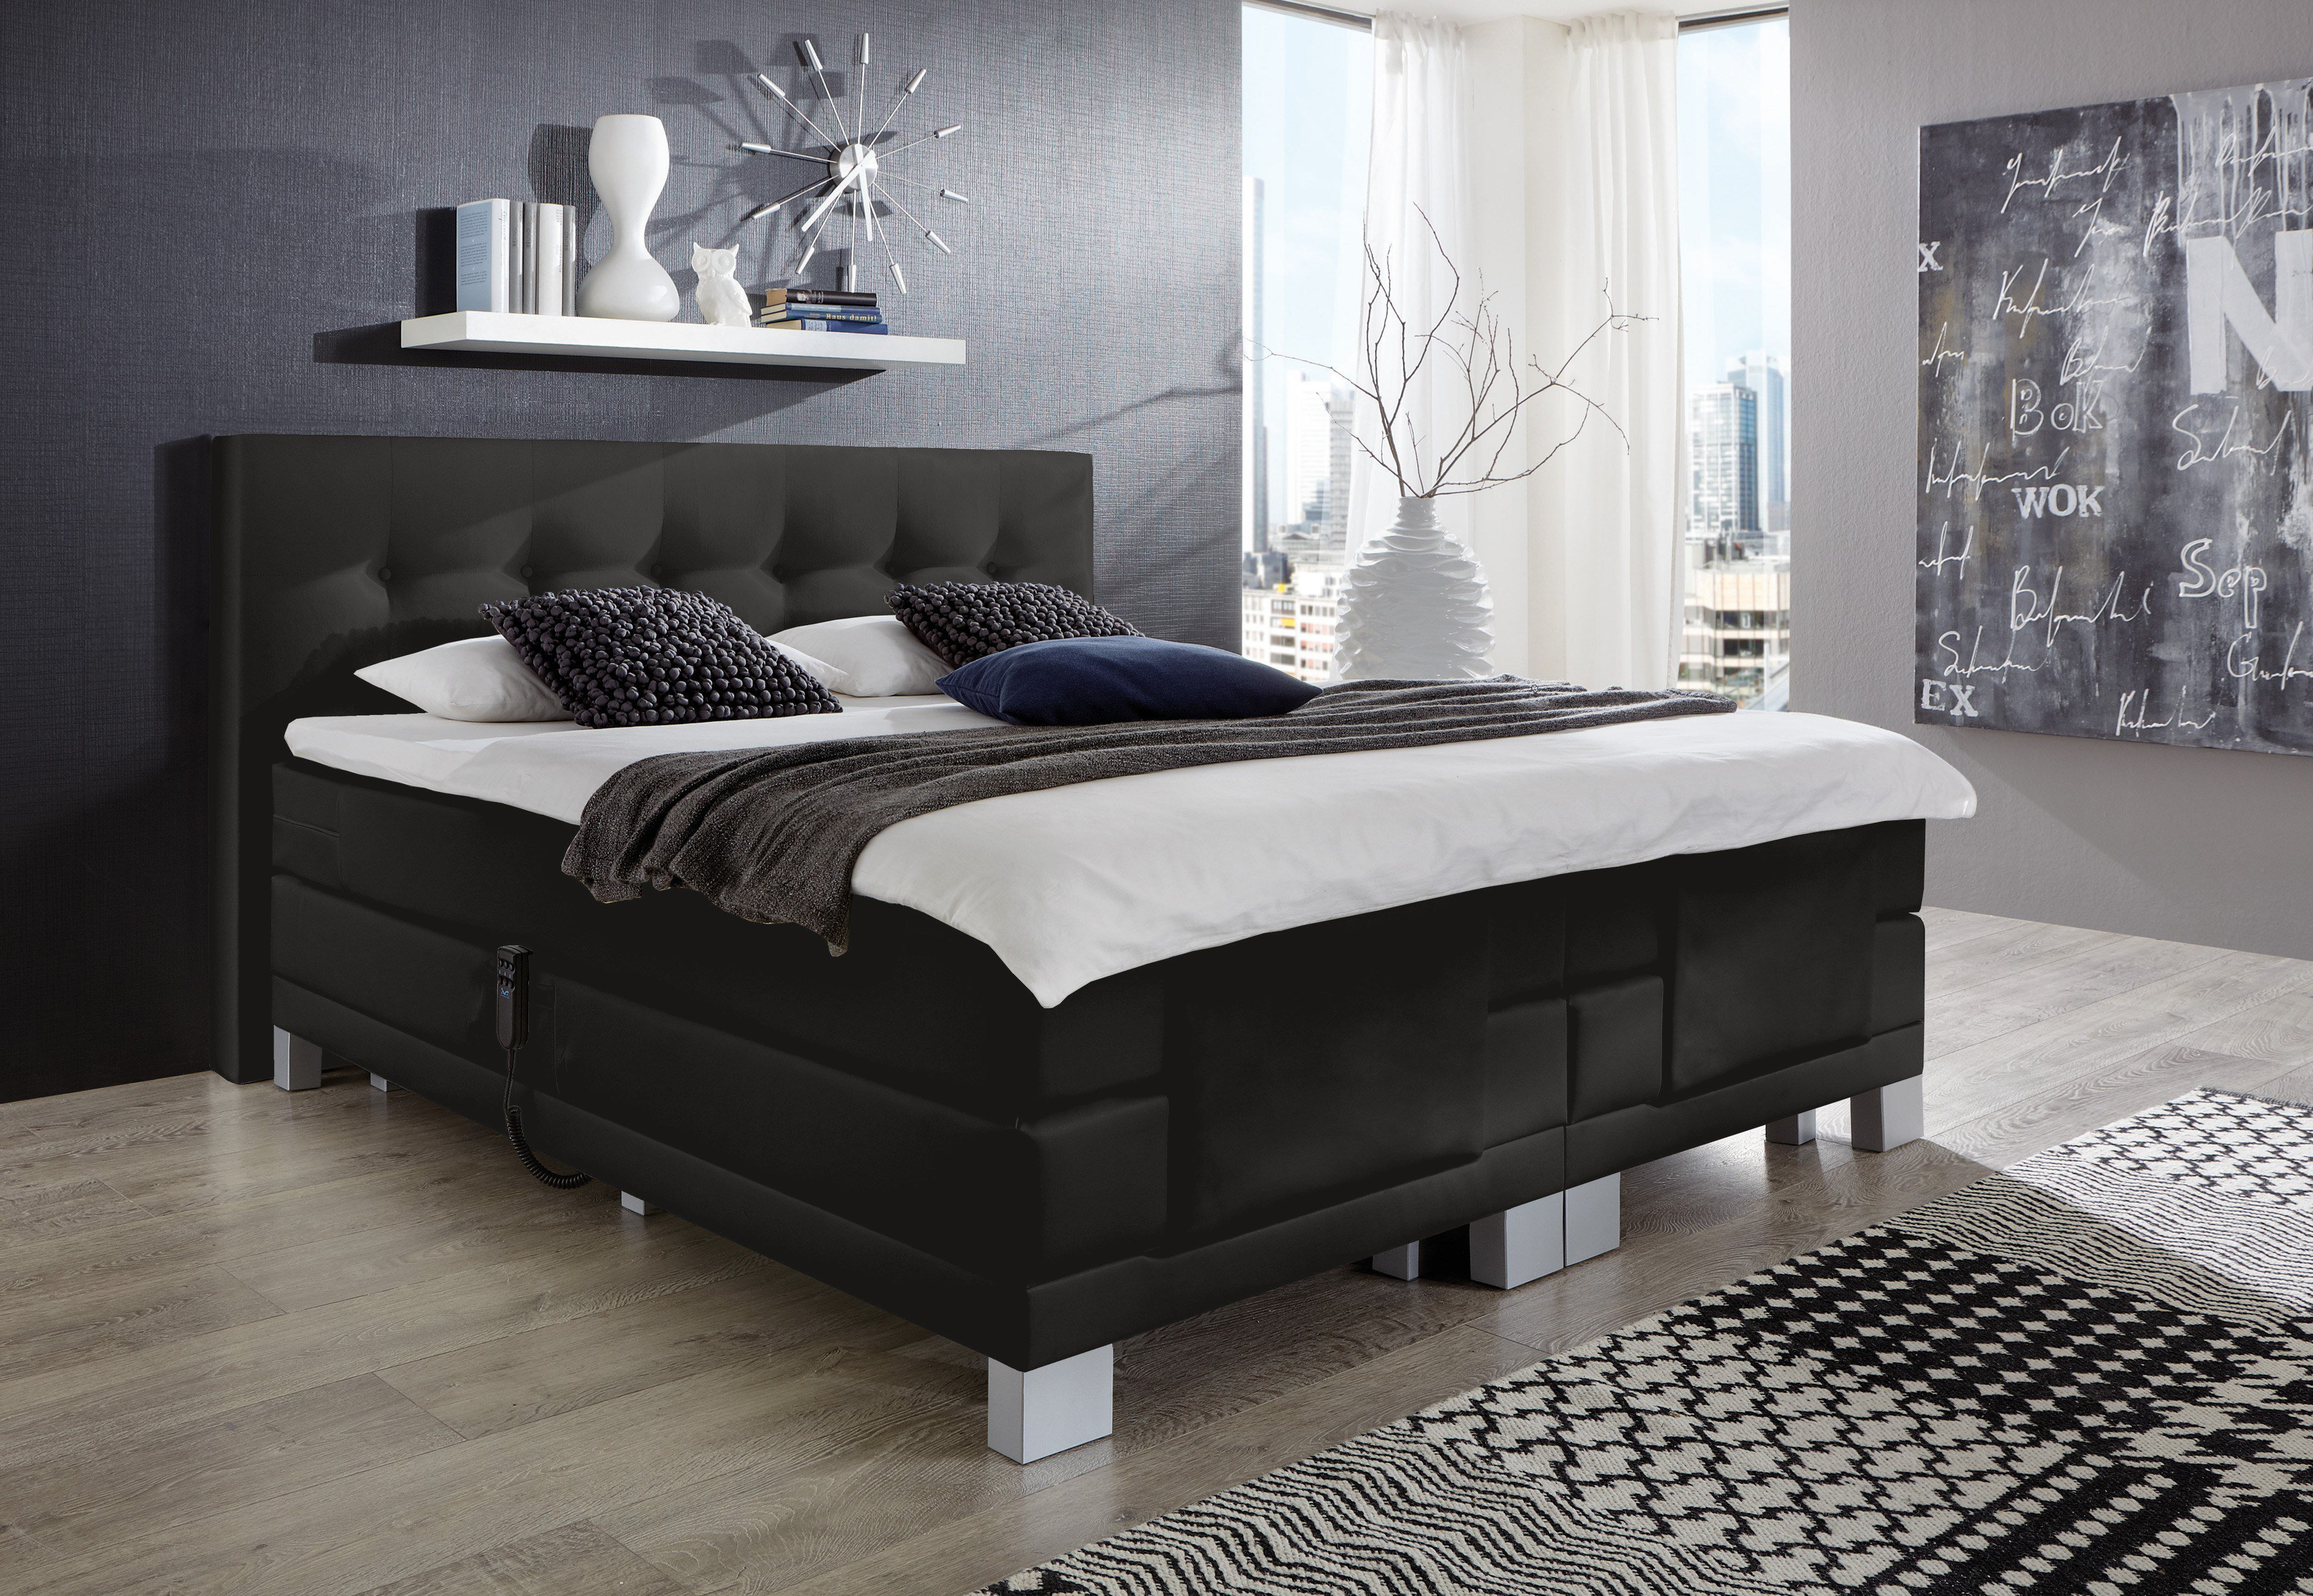 napco boxspringbett mit motor modell allround m bel letz ihr online shop. Black Bedroom Furniture Sets. Home Design Ideas